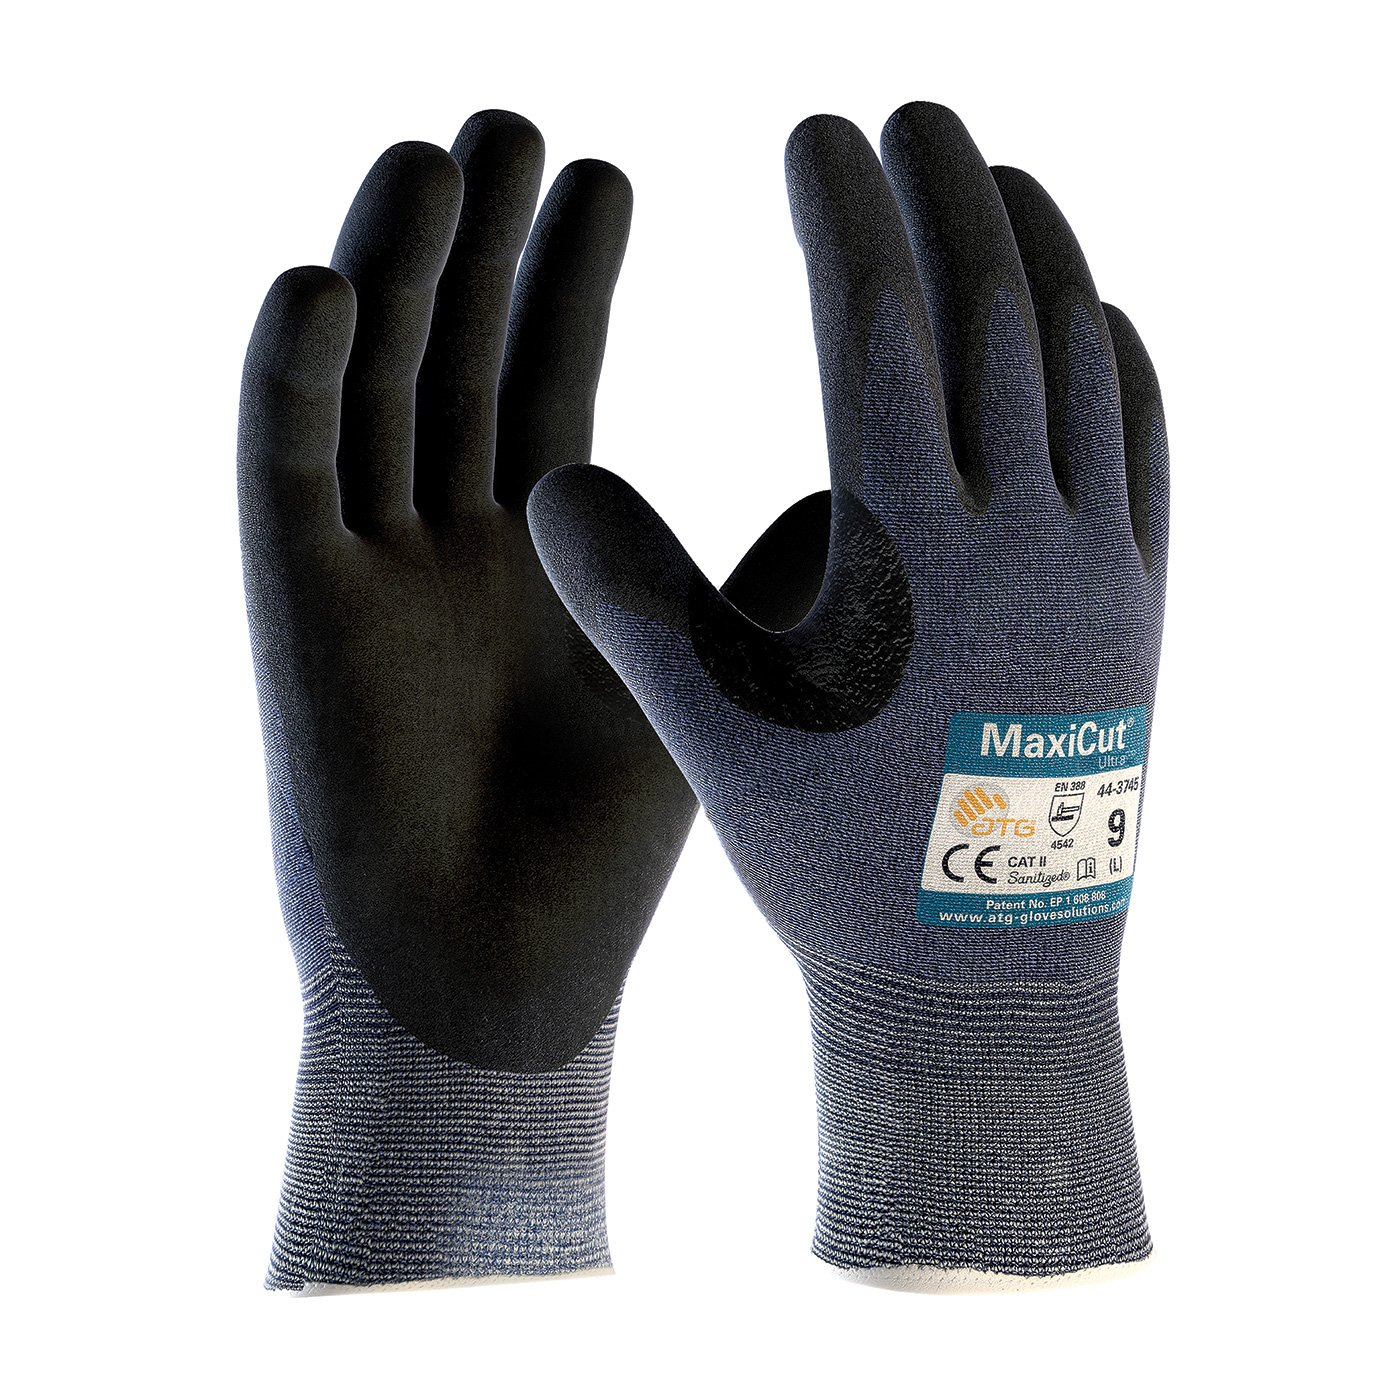 Maxicut Ultra 44-3745 Small Seamless Knit Engineered Yarn Work Glove with Premium Nitrile Coated MicroFoam Grip on Palm and Fingers